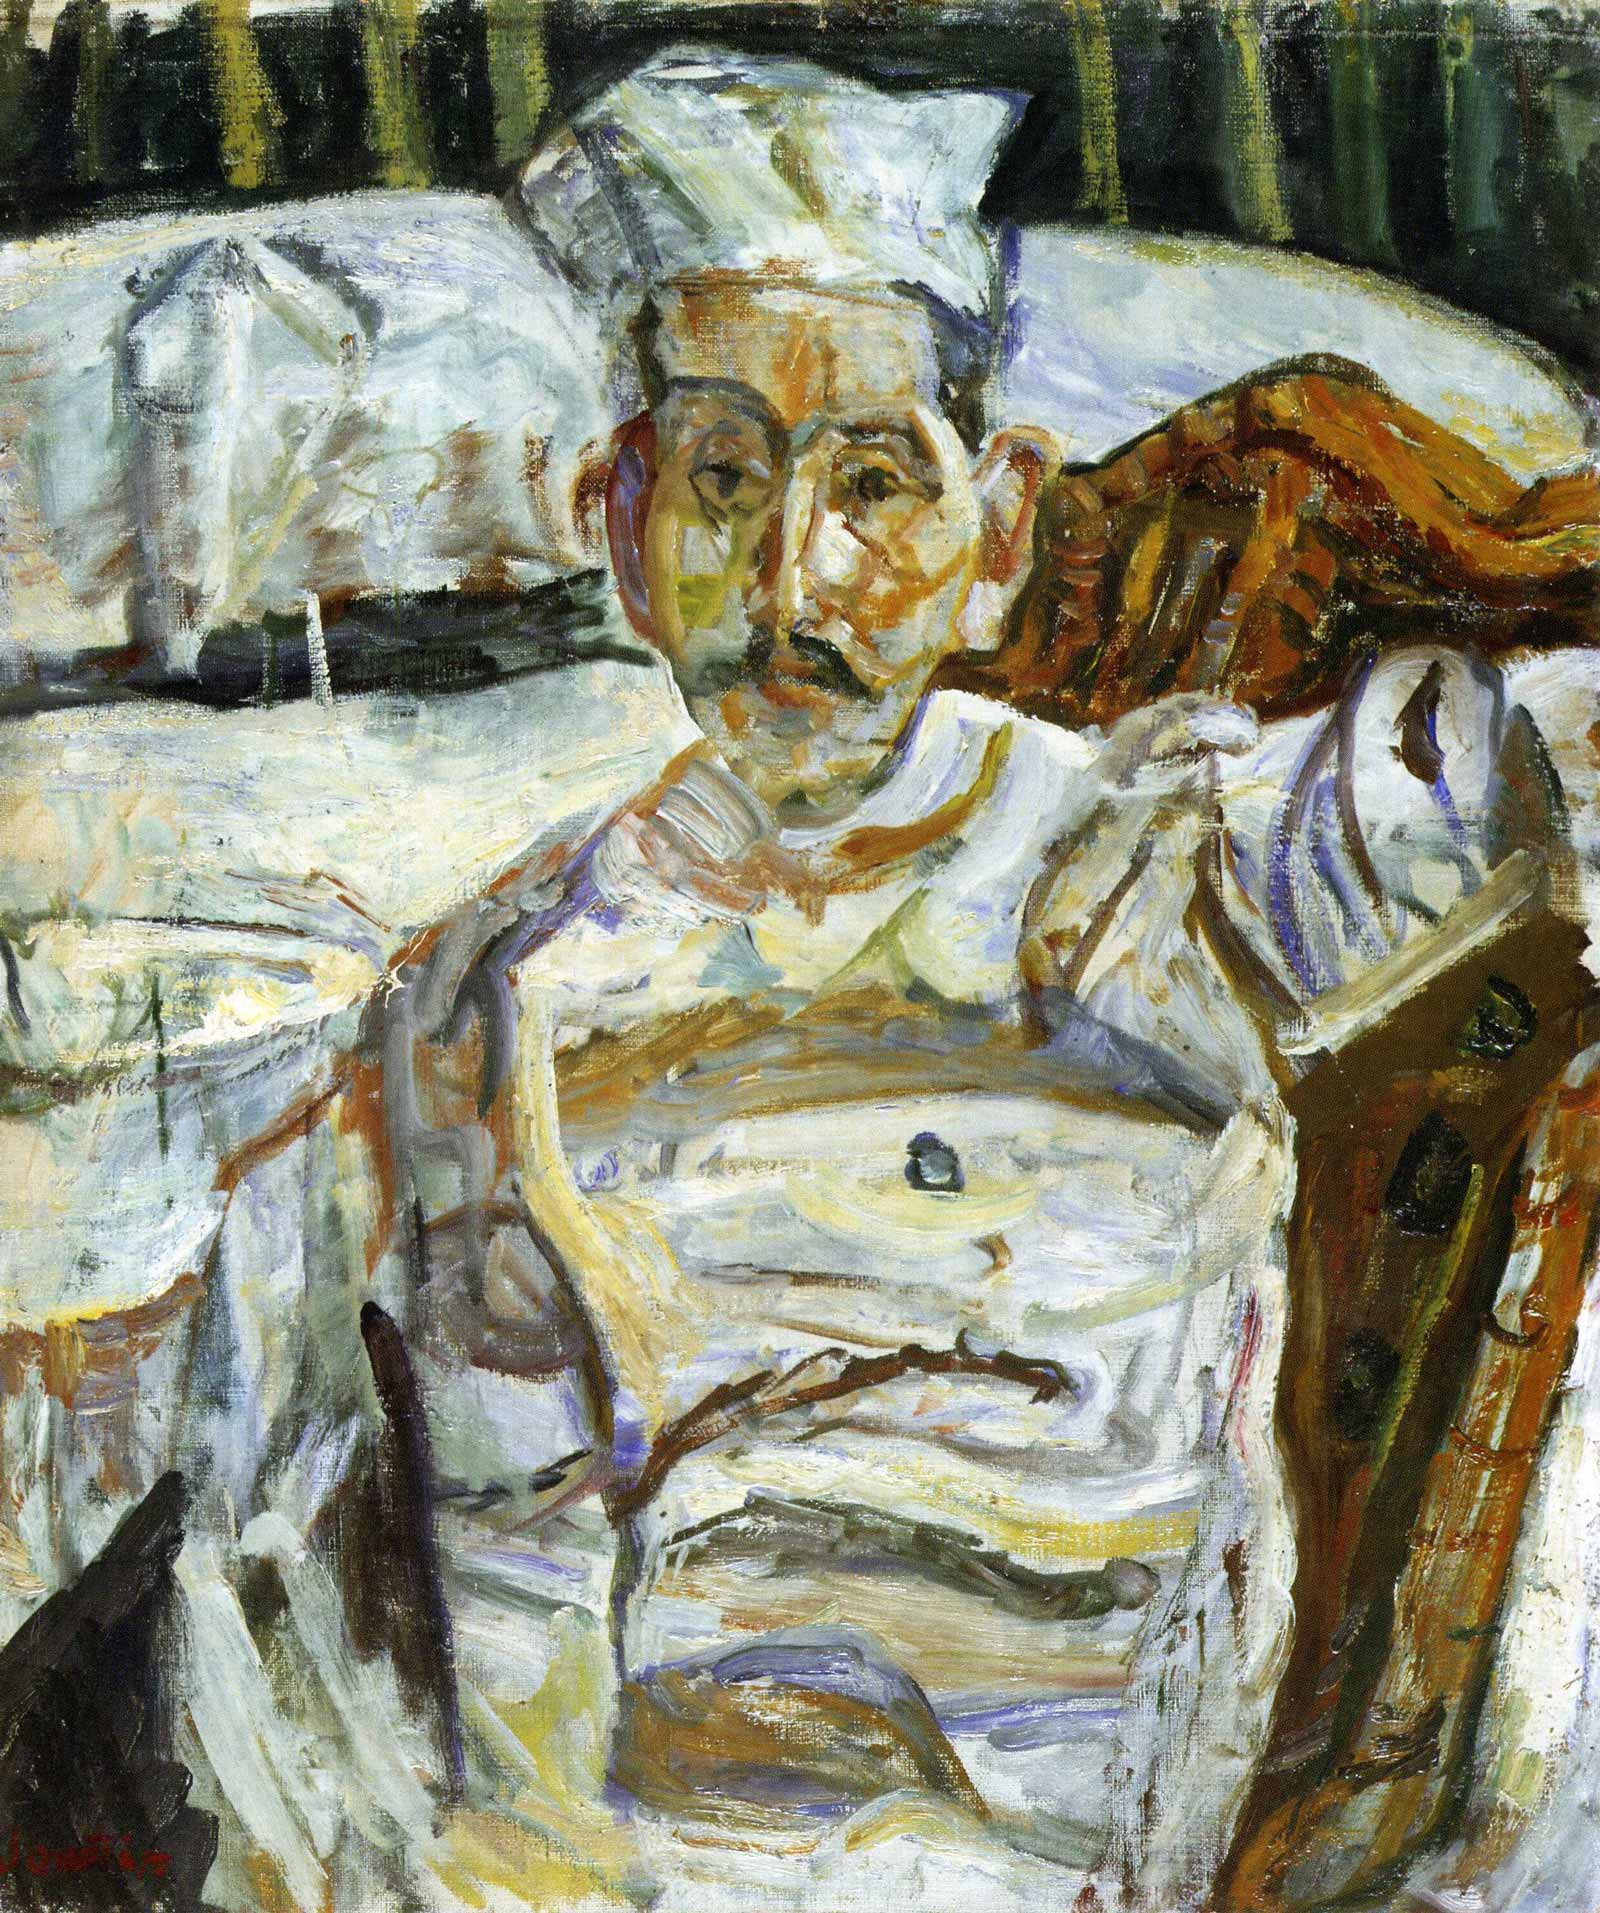 Cham Soutine the Butcher the Baker the Candlestick Maker  by Lucy Scholes  NYR Daily  The